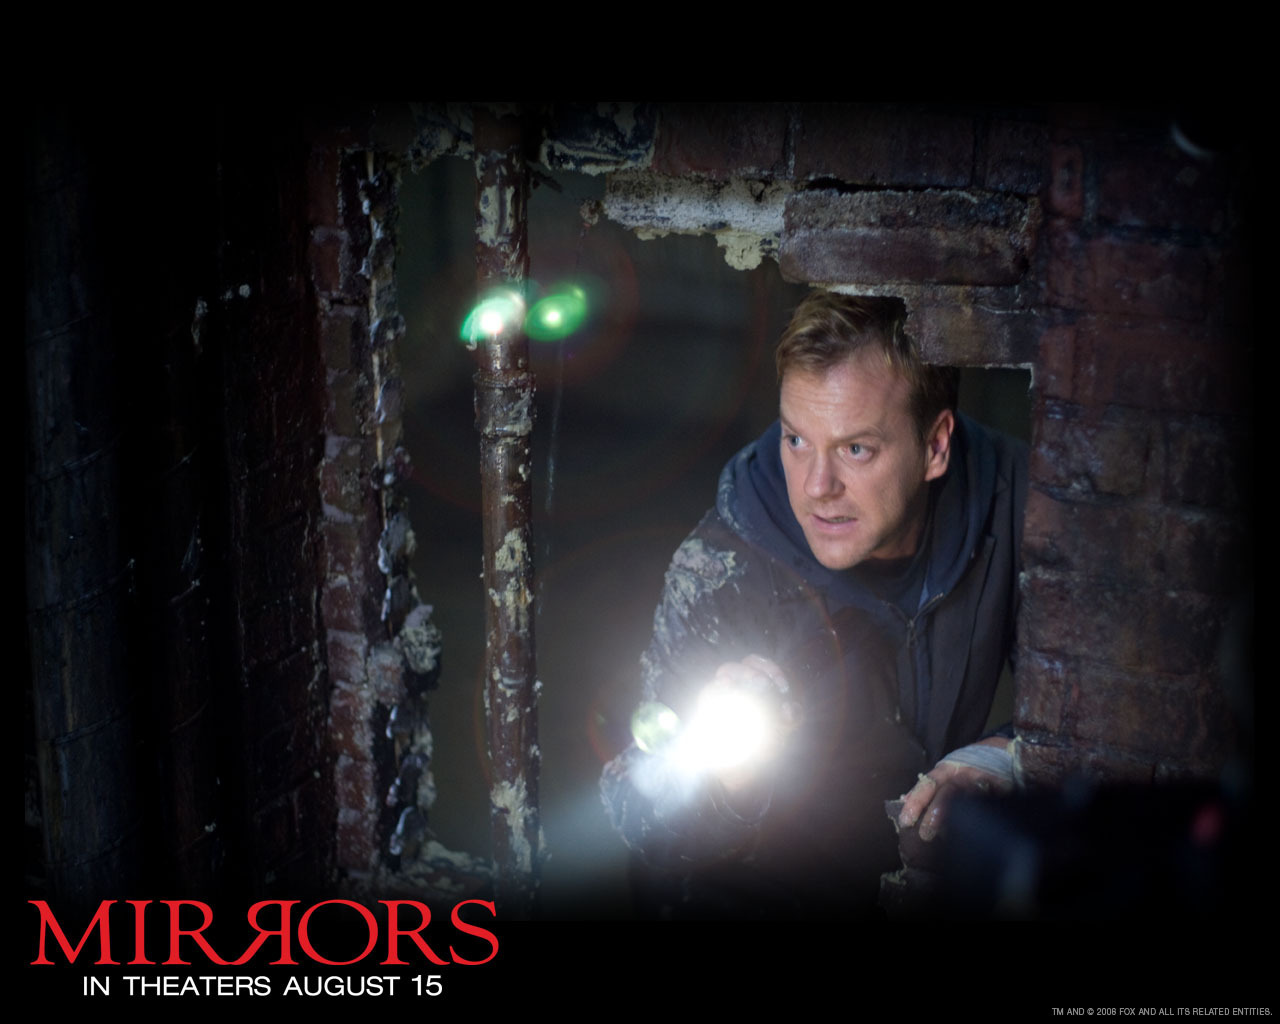 mirrors horror movies wallpaper 7085477 fanpop